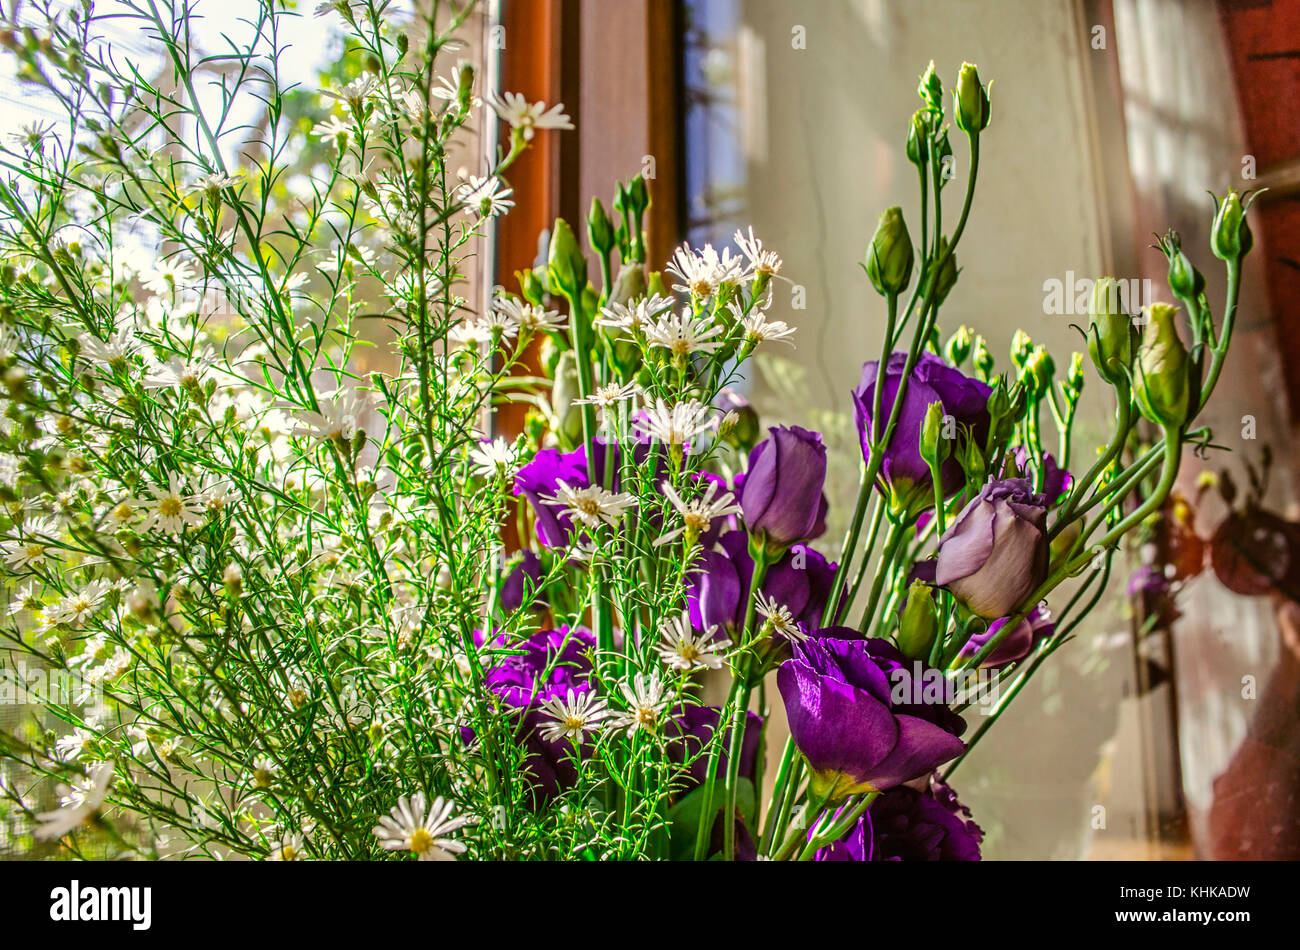 Bouquet of purple flowers Lisianthus with branches delicate white wildflowers on the windowsill in bright sunny - Stock Image